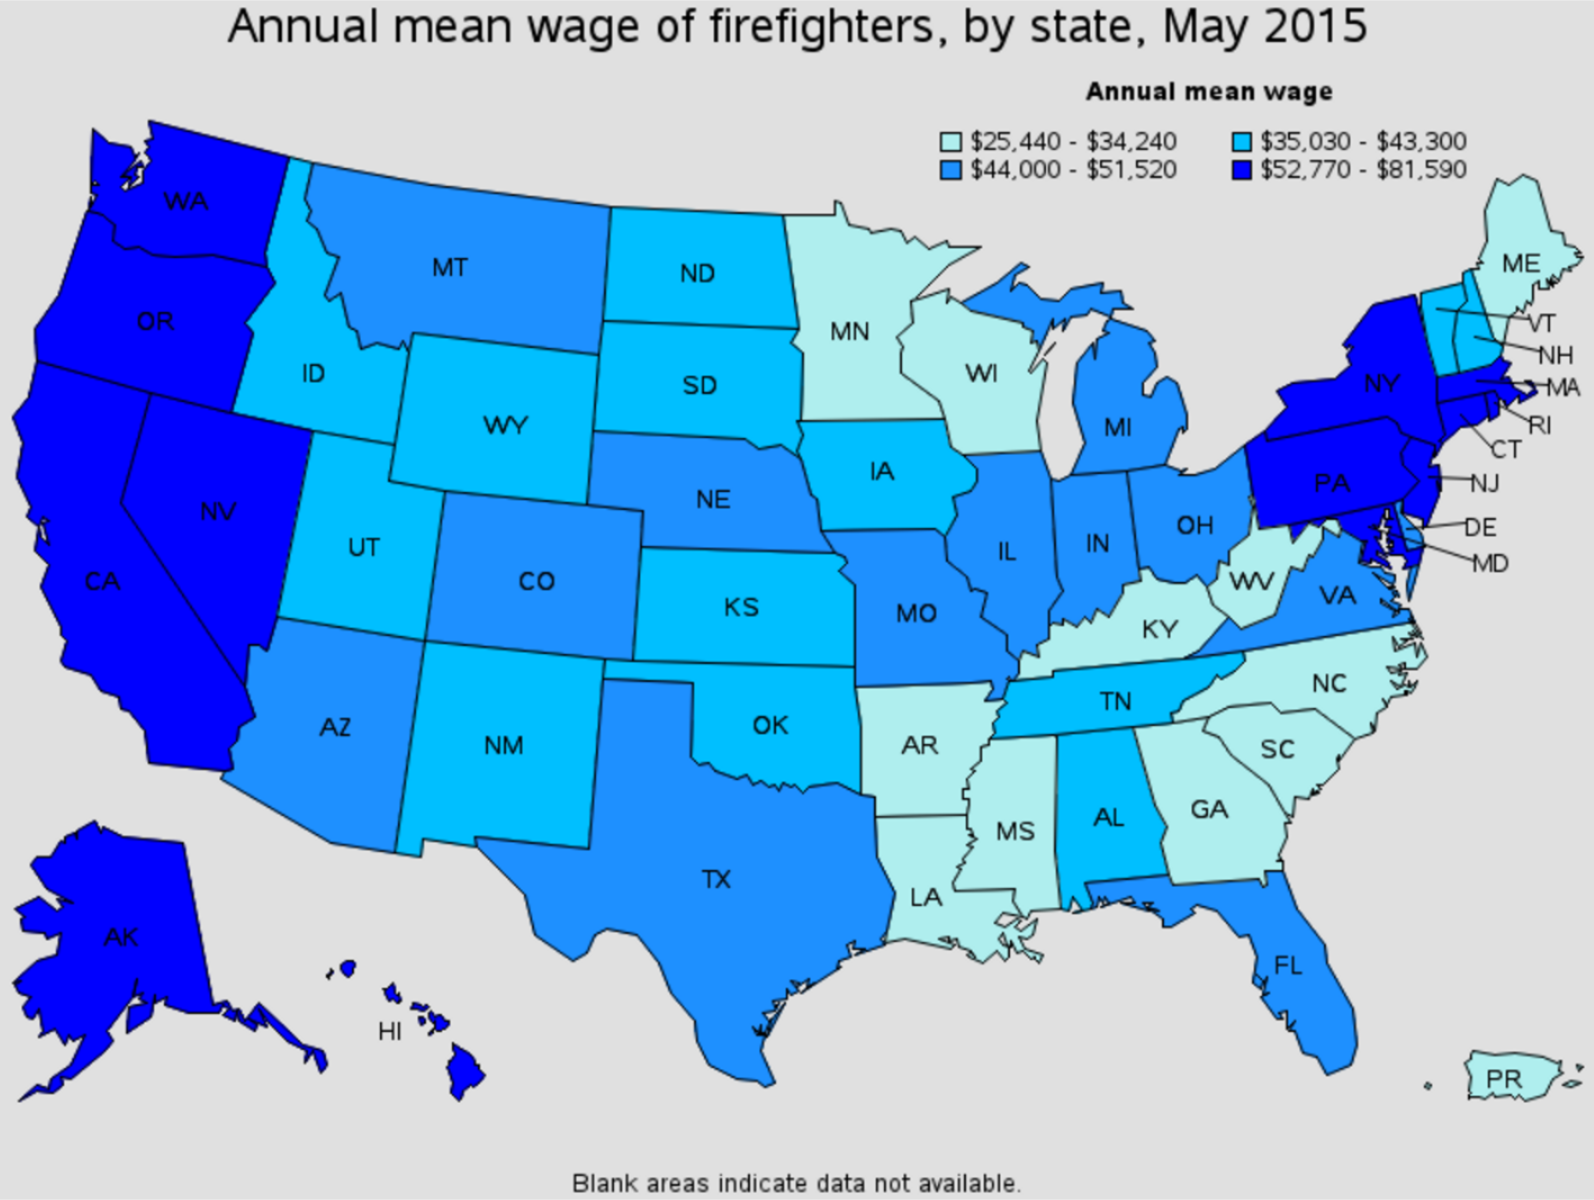 firefighter average salary by state York Alabama